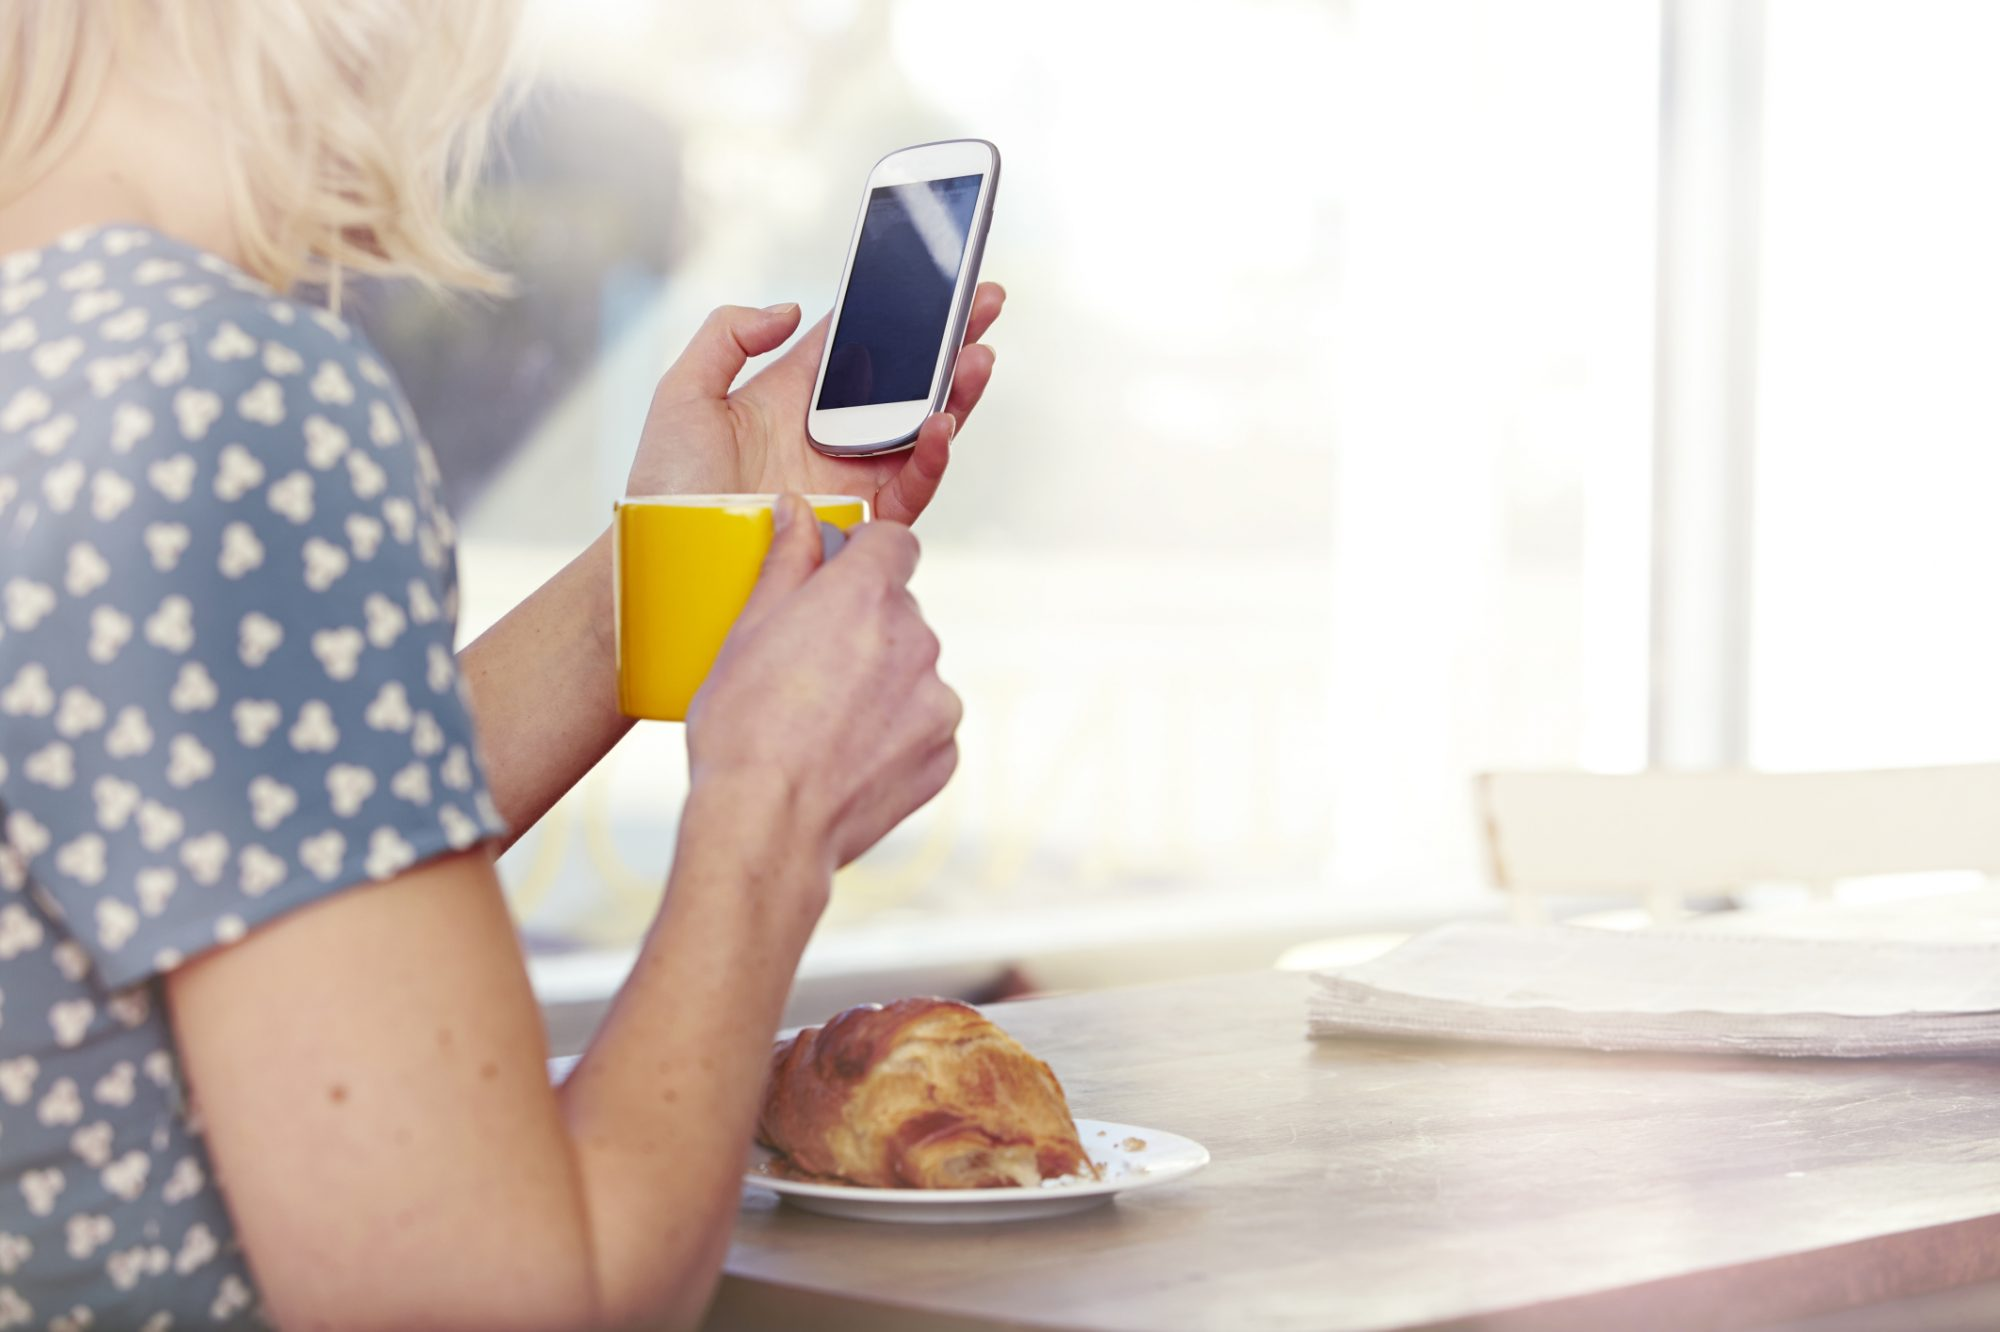 Woman using her phone at the table.